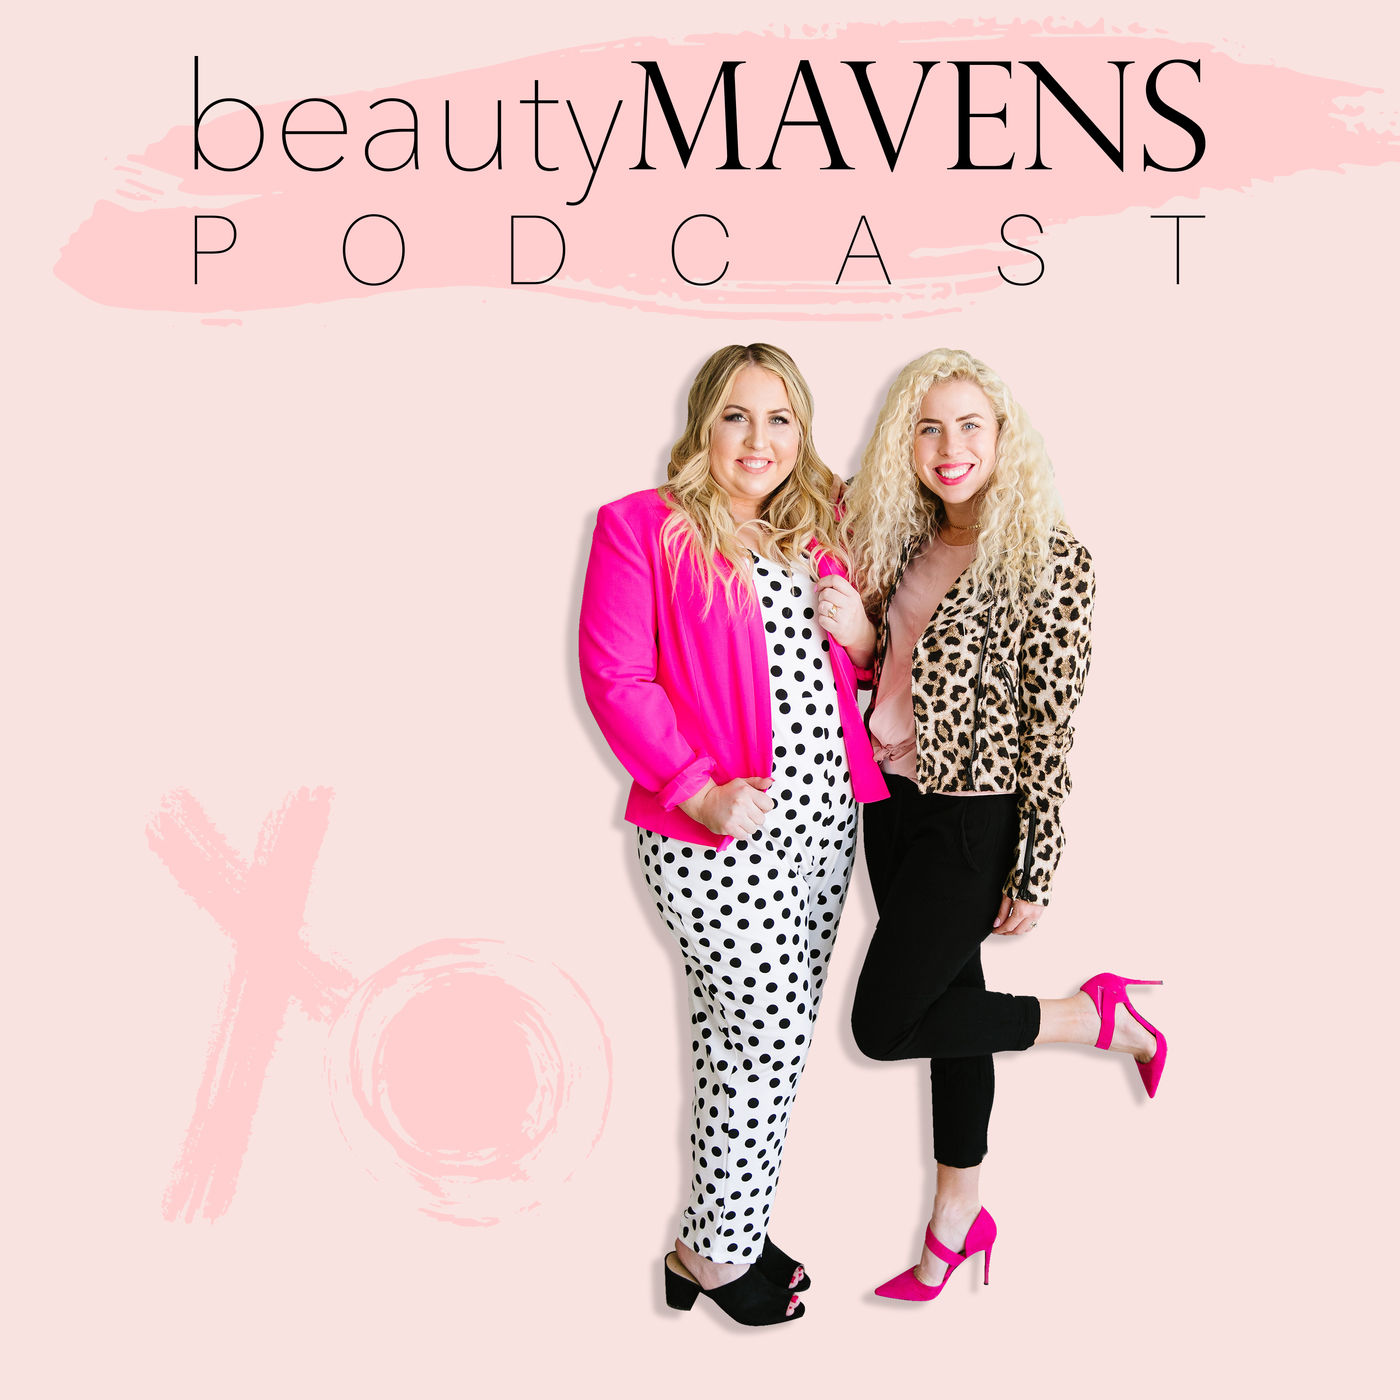 Beauty Mavens Podcast by Kristen de Oliveira   Madison Annis on ... ce002e2ee